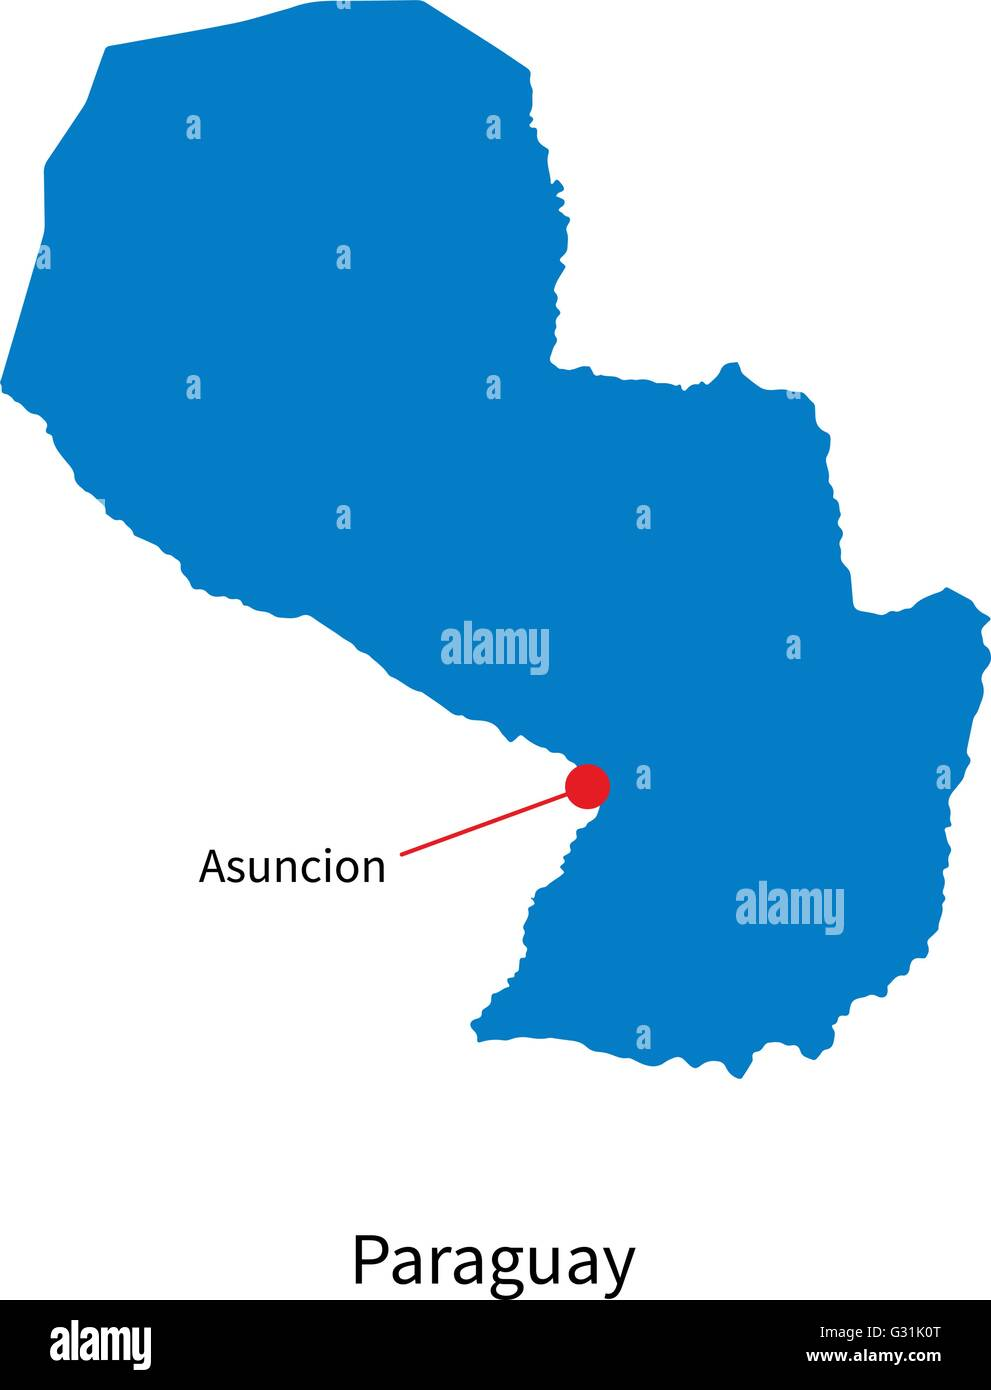 Detailed Vector Map Of Paraguay And Capital City Asuncion Stock - Map of paraguay world